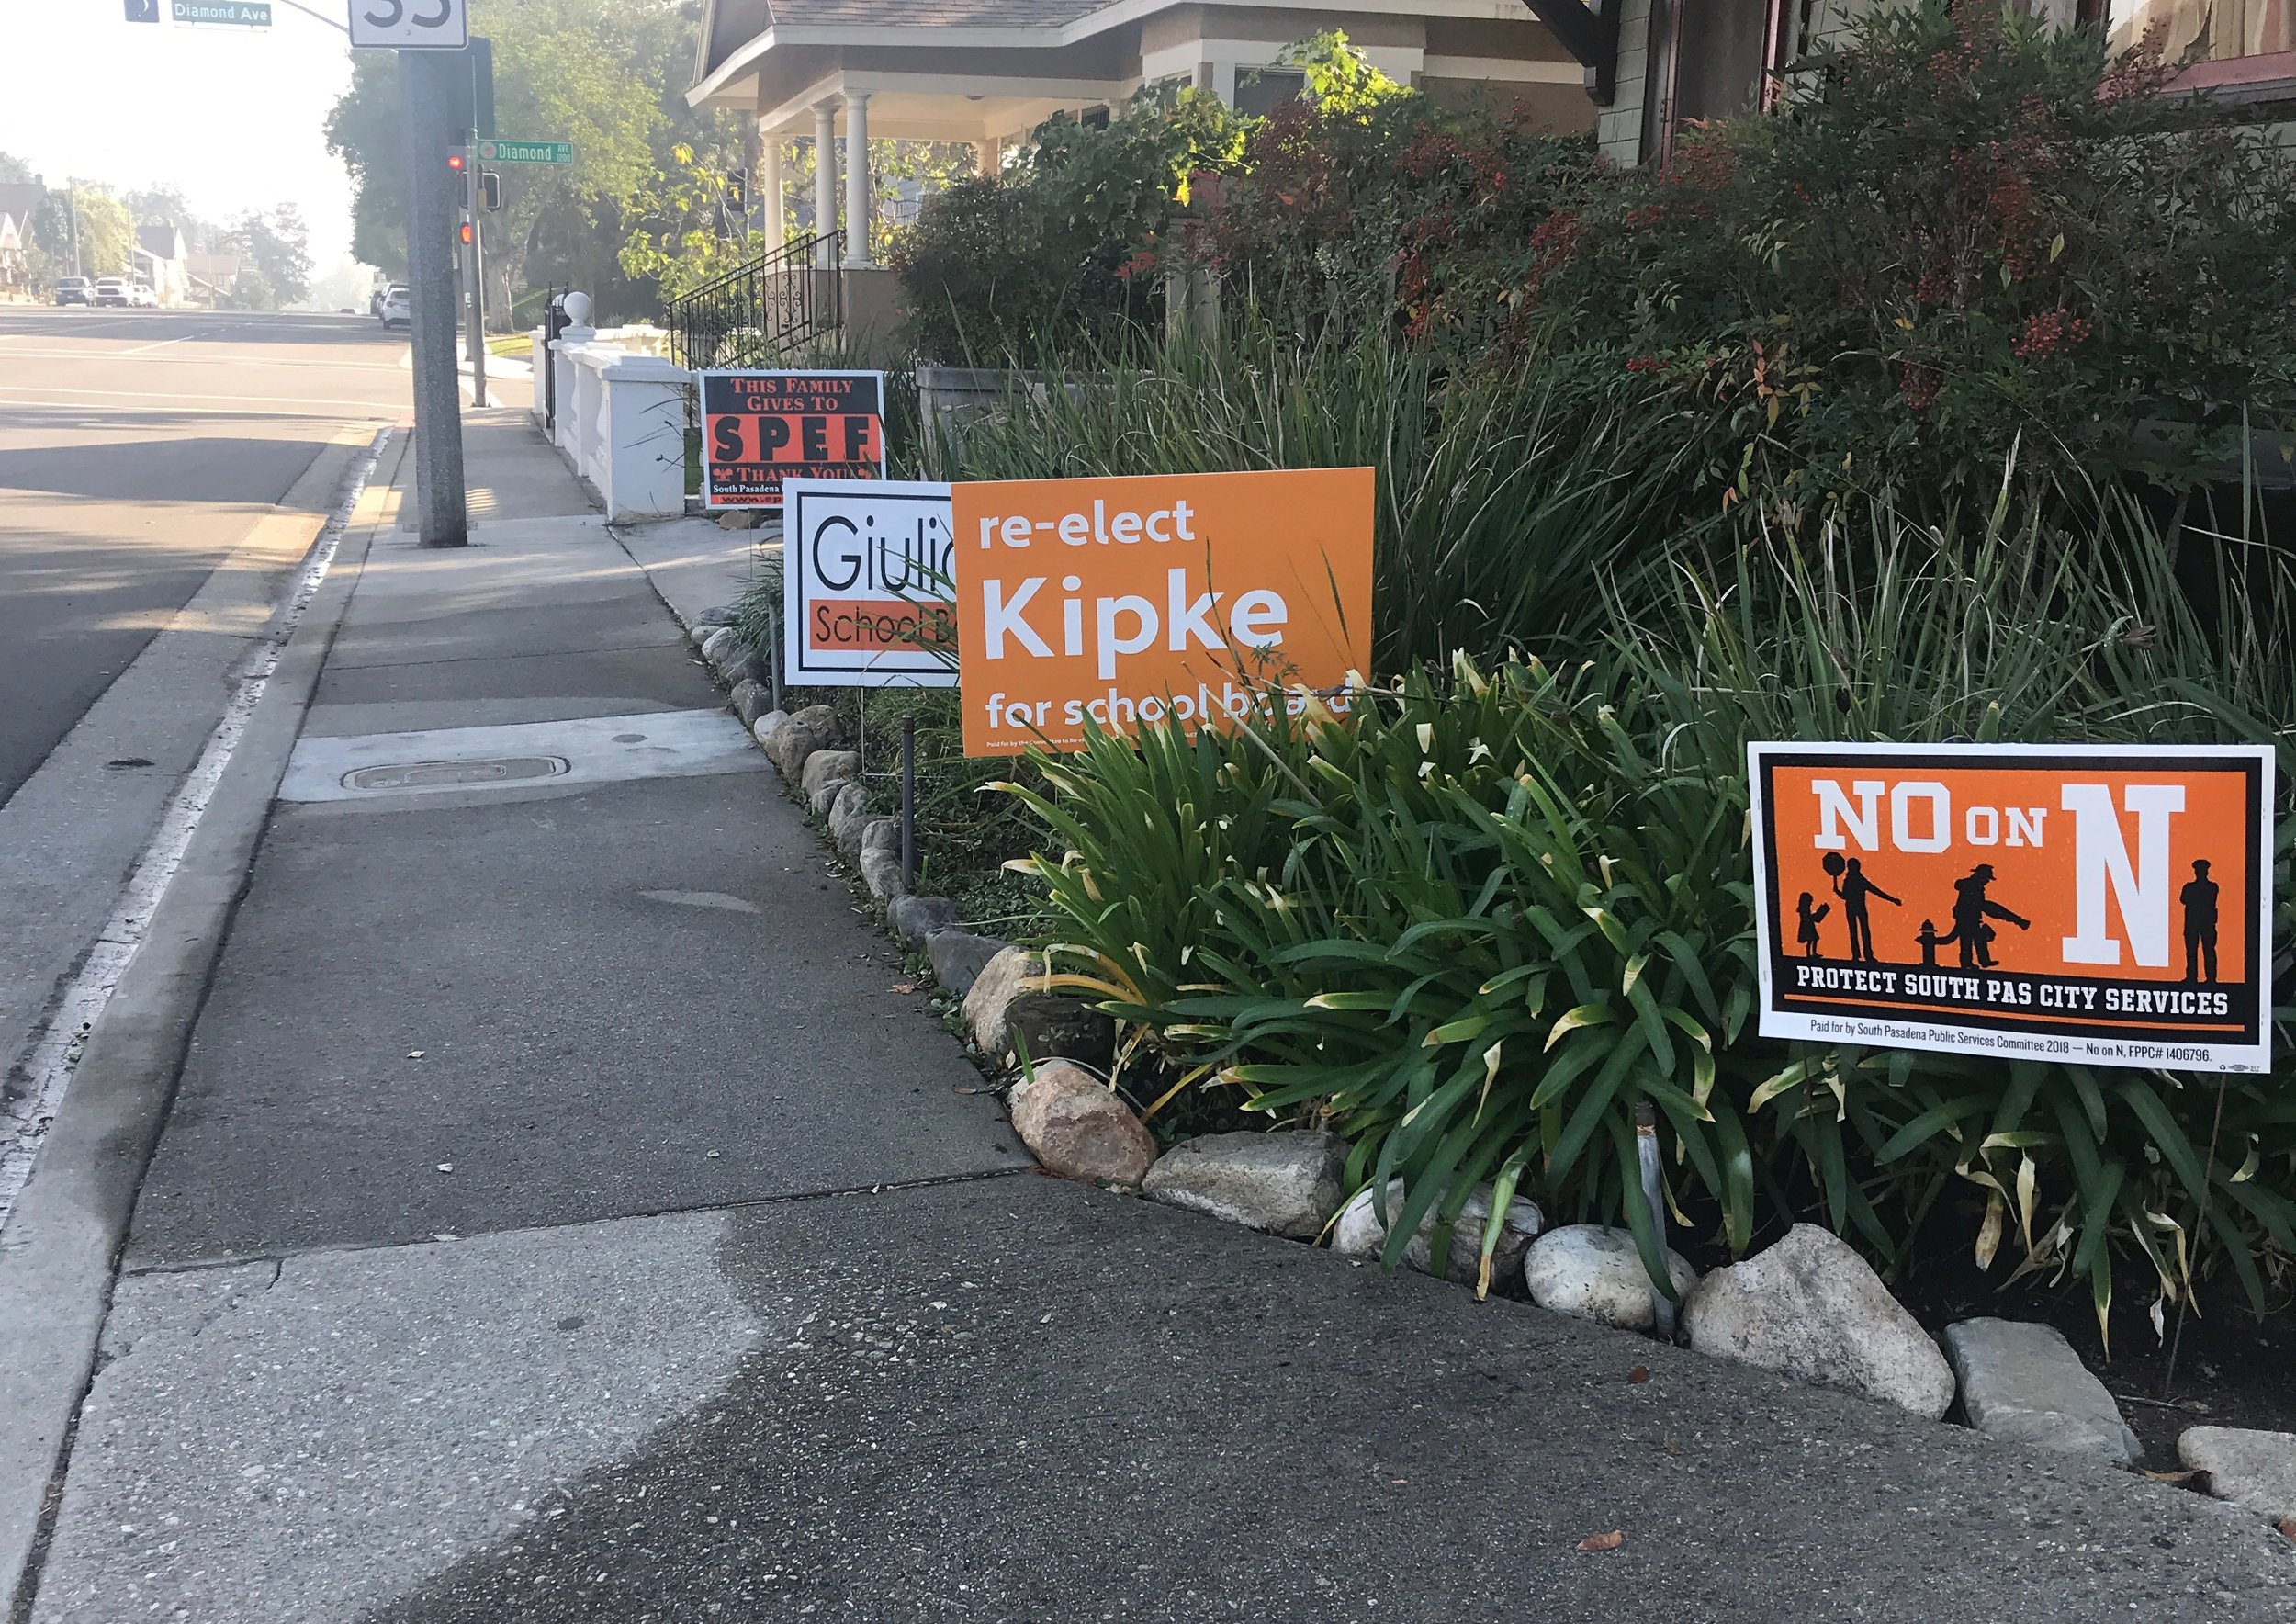 I think we may have over-done it on lawn signs.